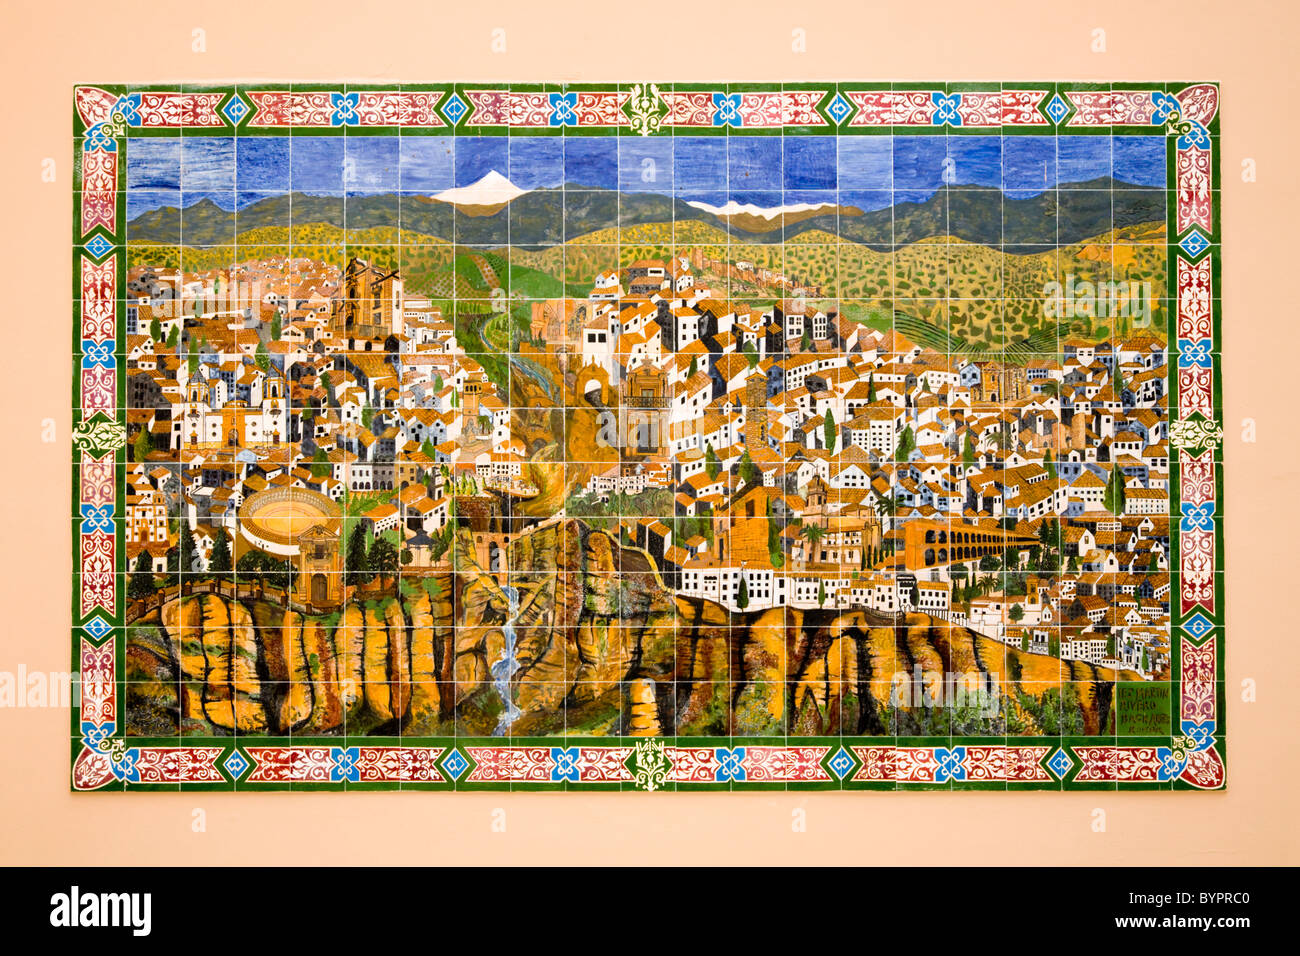 spanish terracotta  terra cotta tile  tiles  ceramics  ceramic map ofronda city on a wall in ronda spain. spanish terracotta  terra cotta tile  tiles  ceramics  ceramic